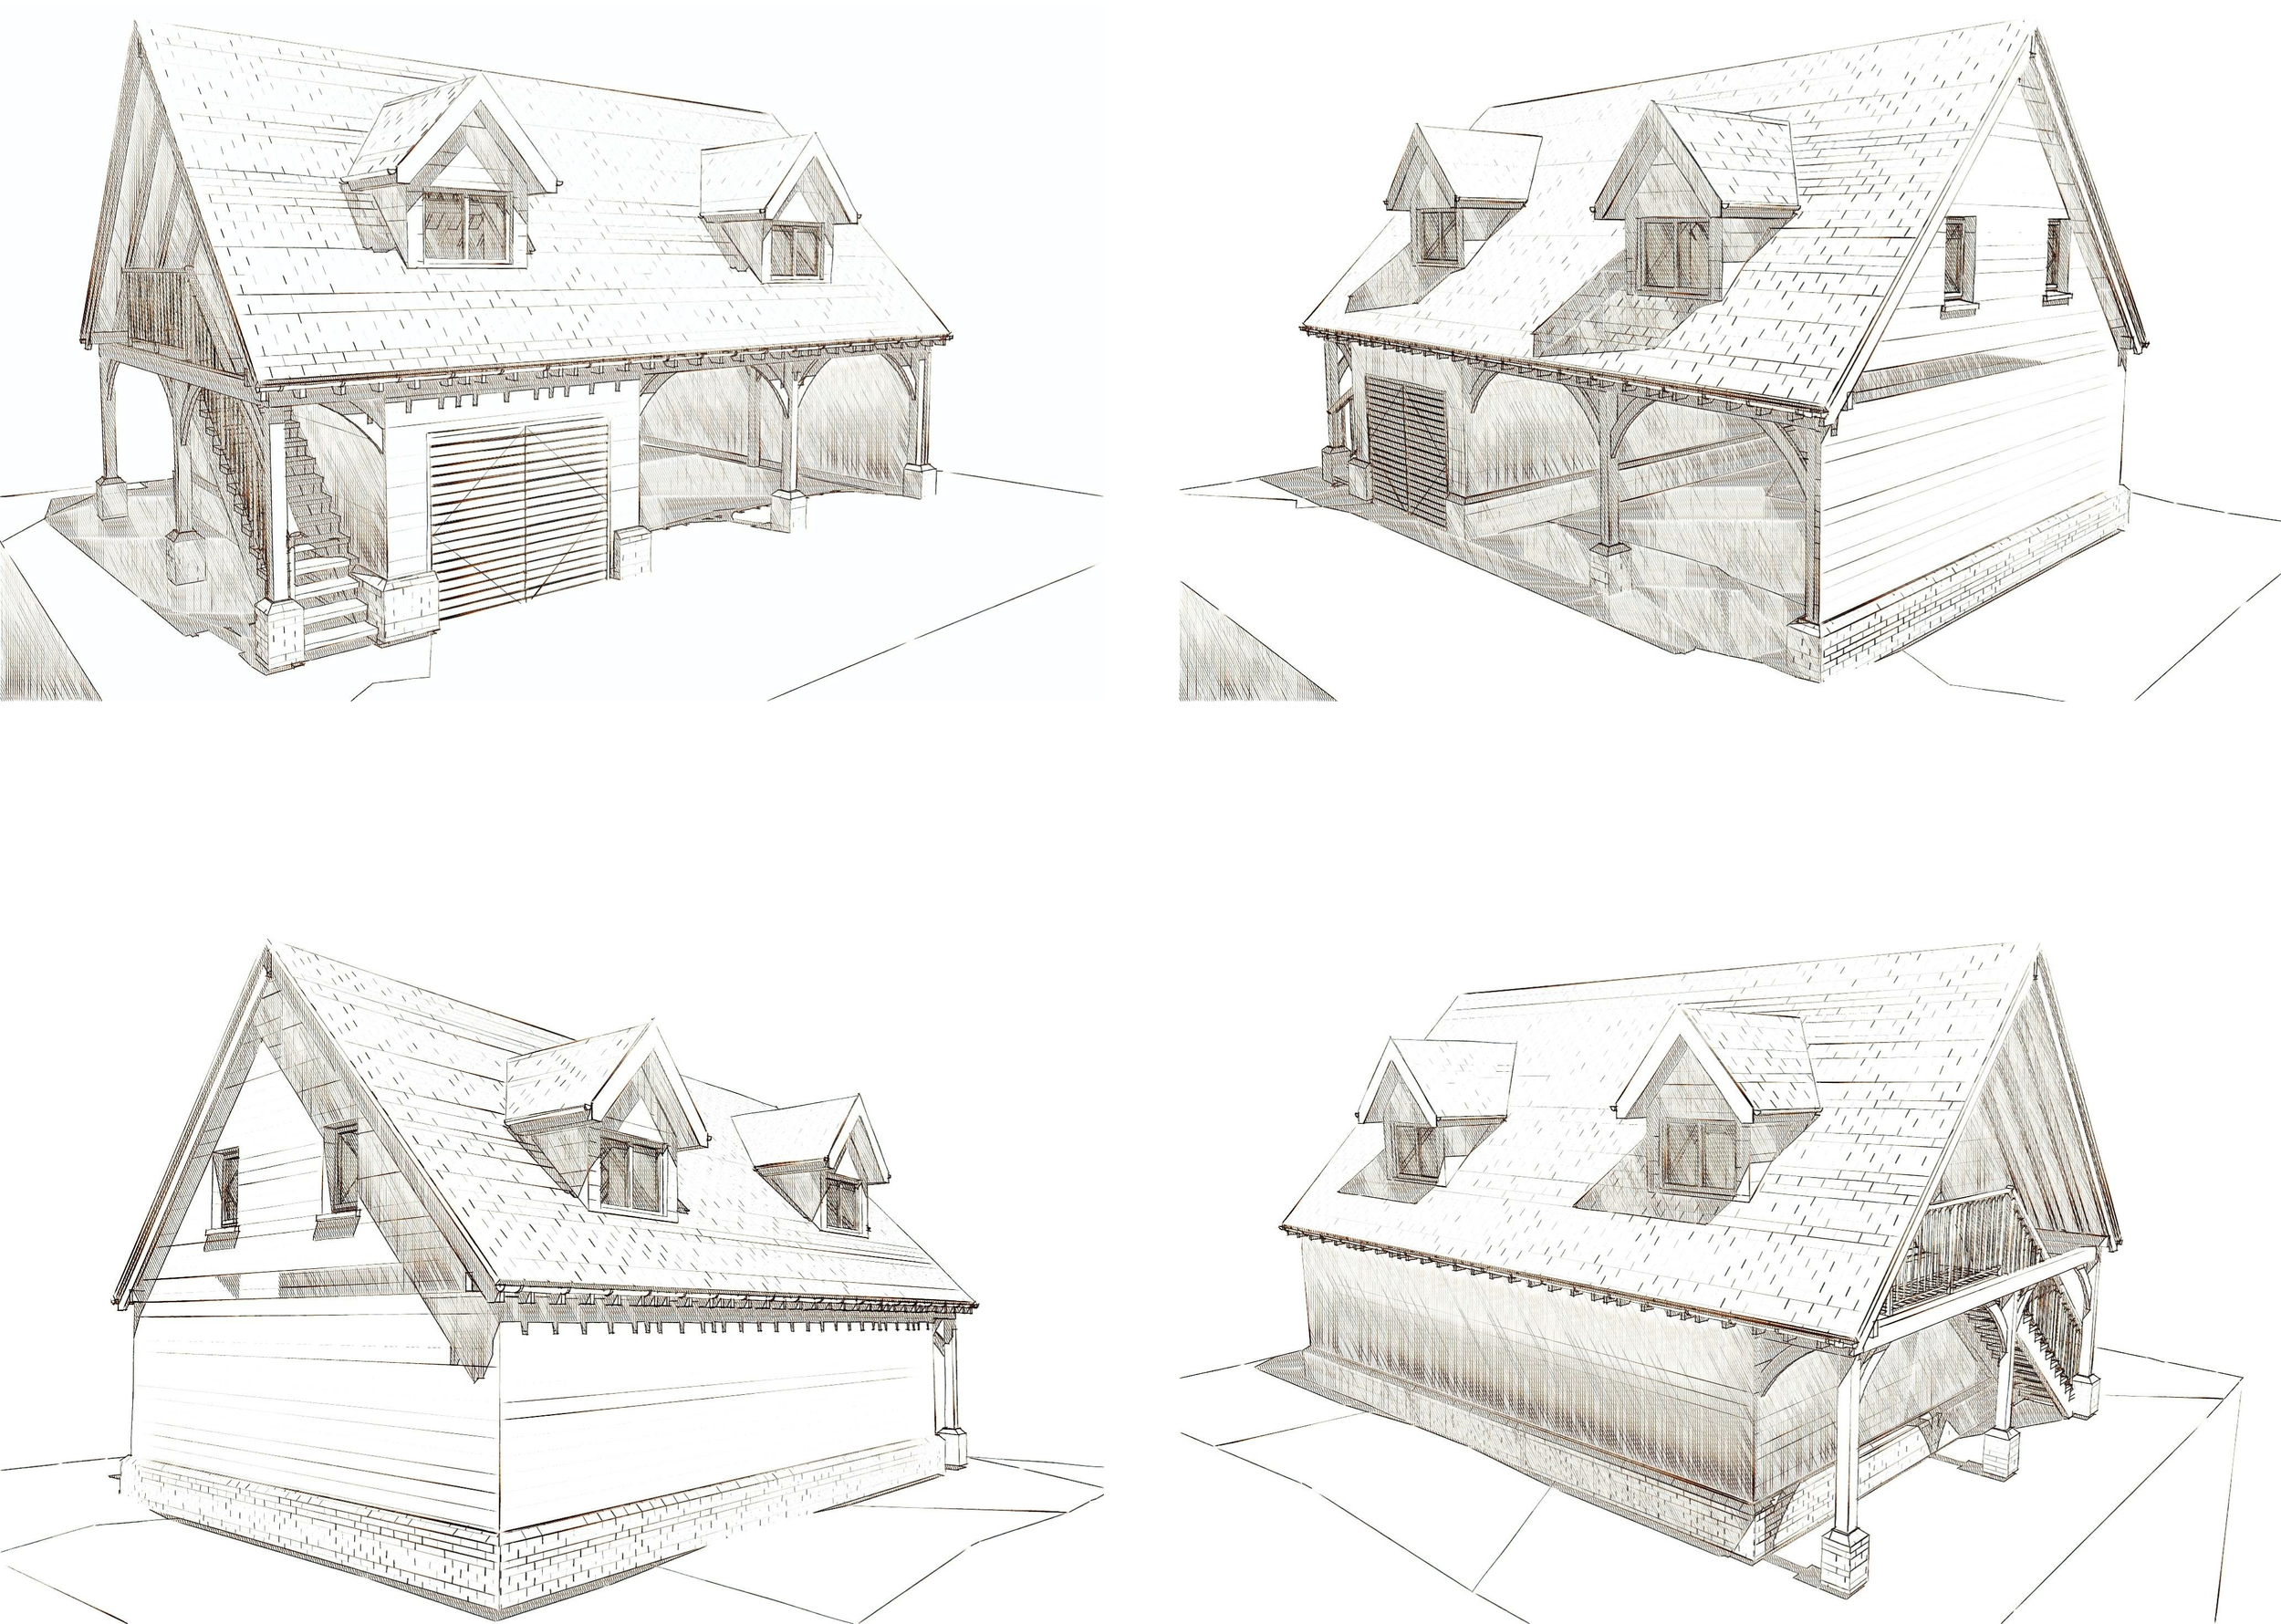 T3449_916 Proposal C - Garage_Office - 3D Sketches.jpg